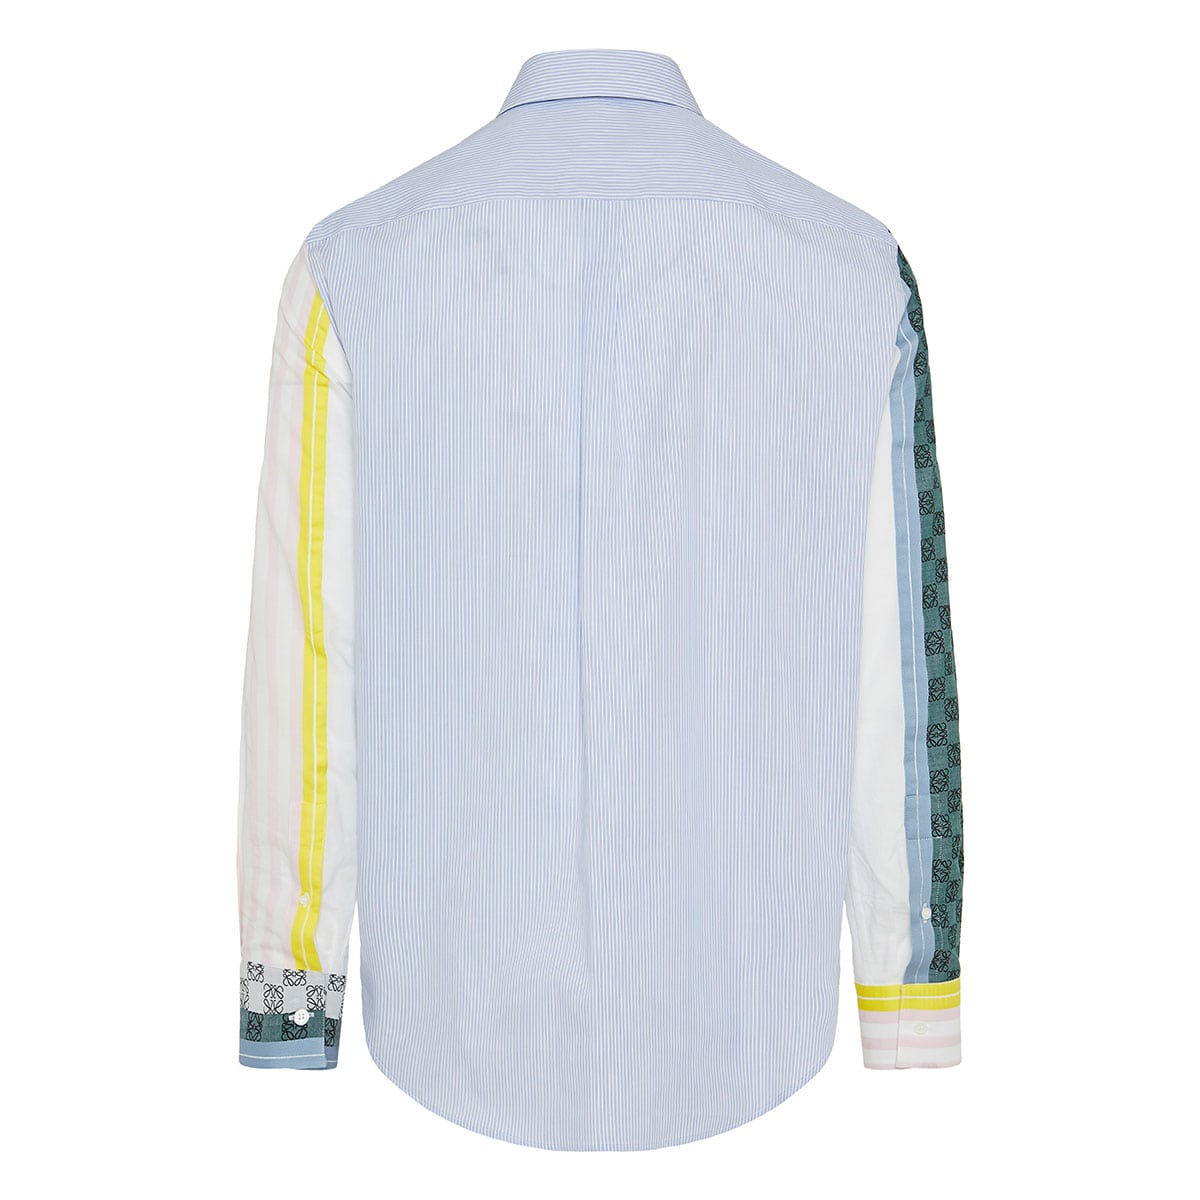 Anagram embroidered striped shirt